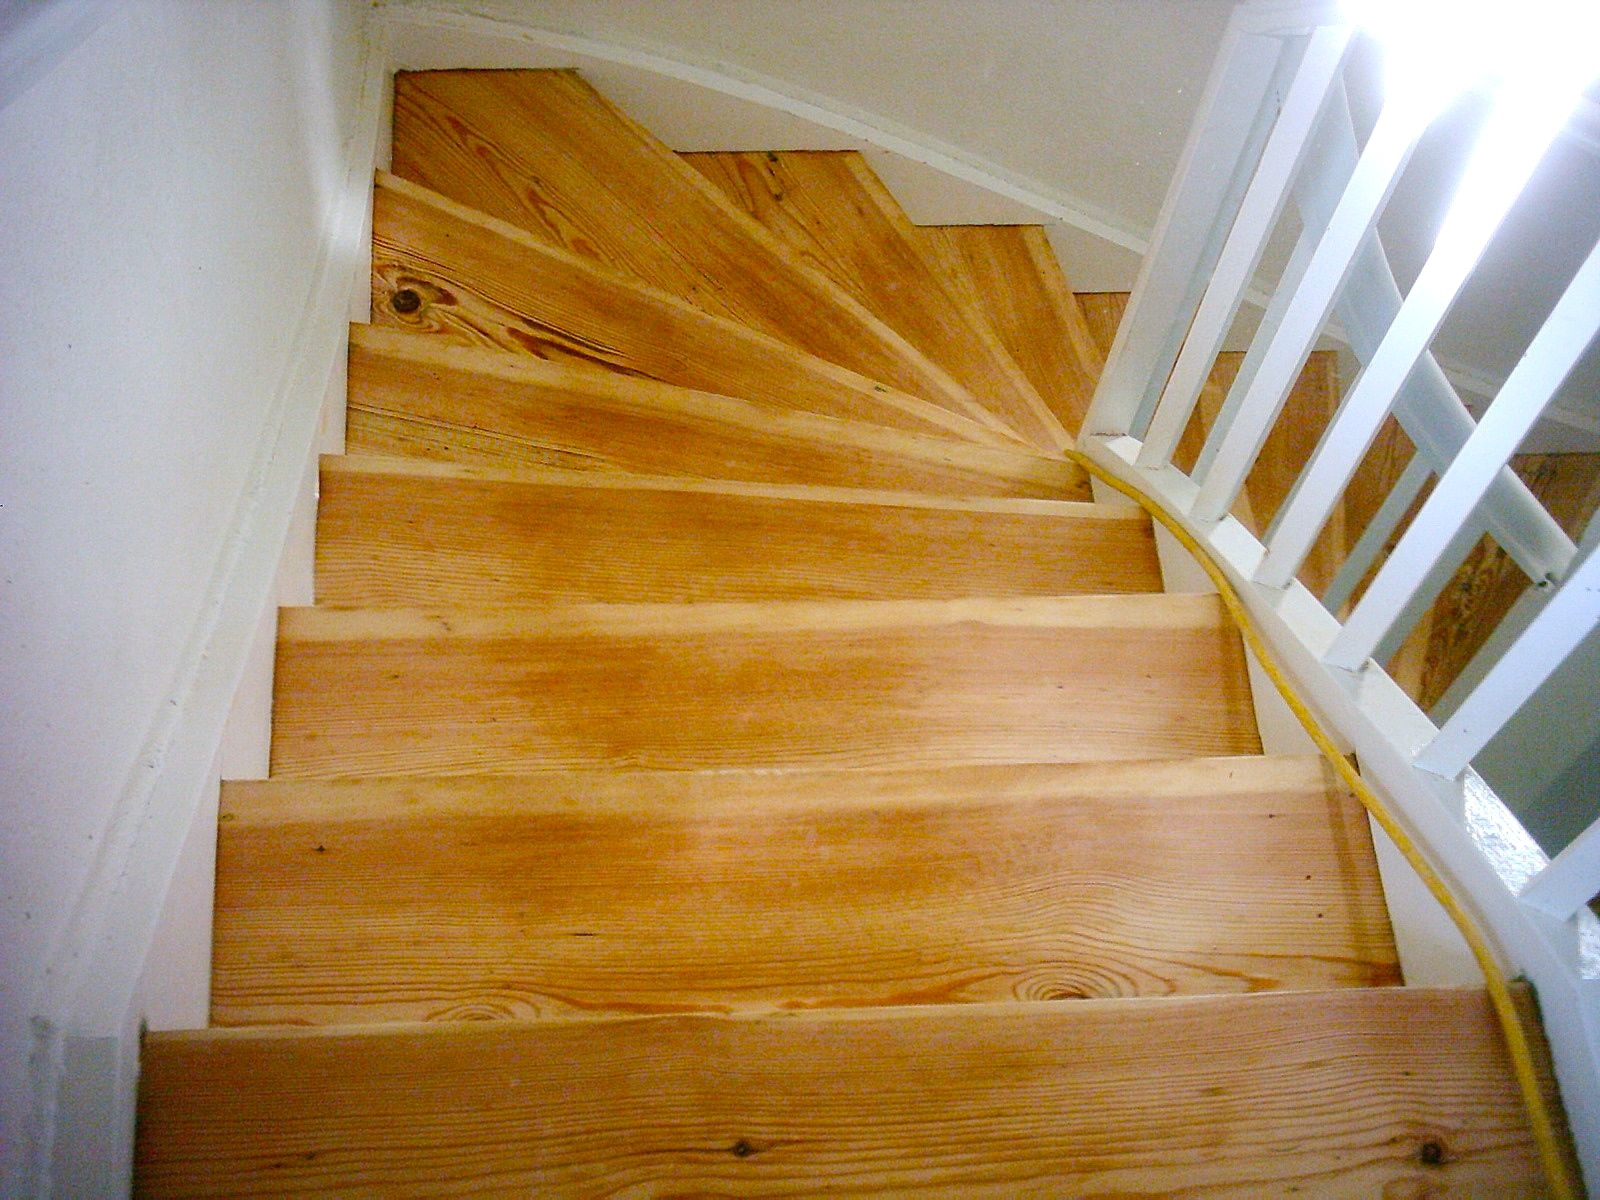 Sanding stair, acryl waterbased paint, satin